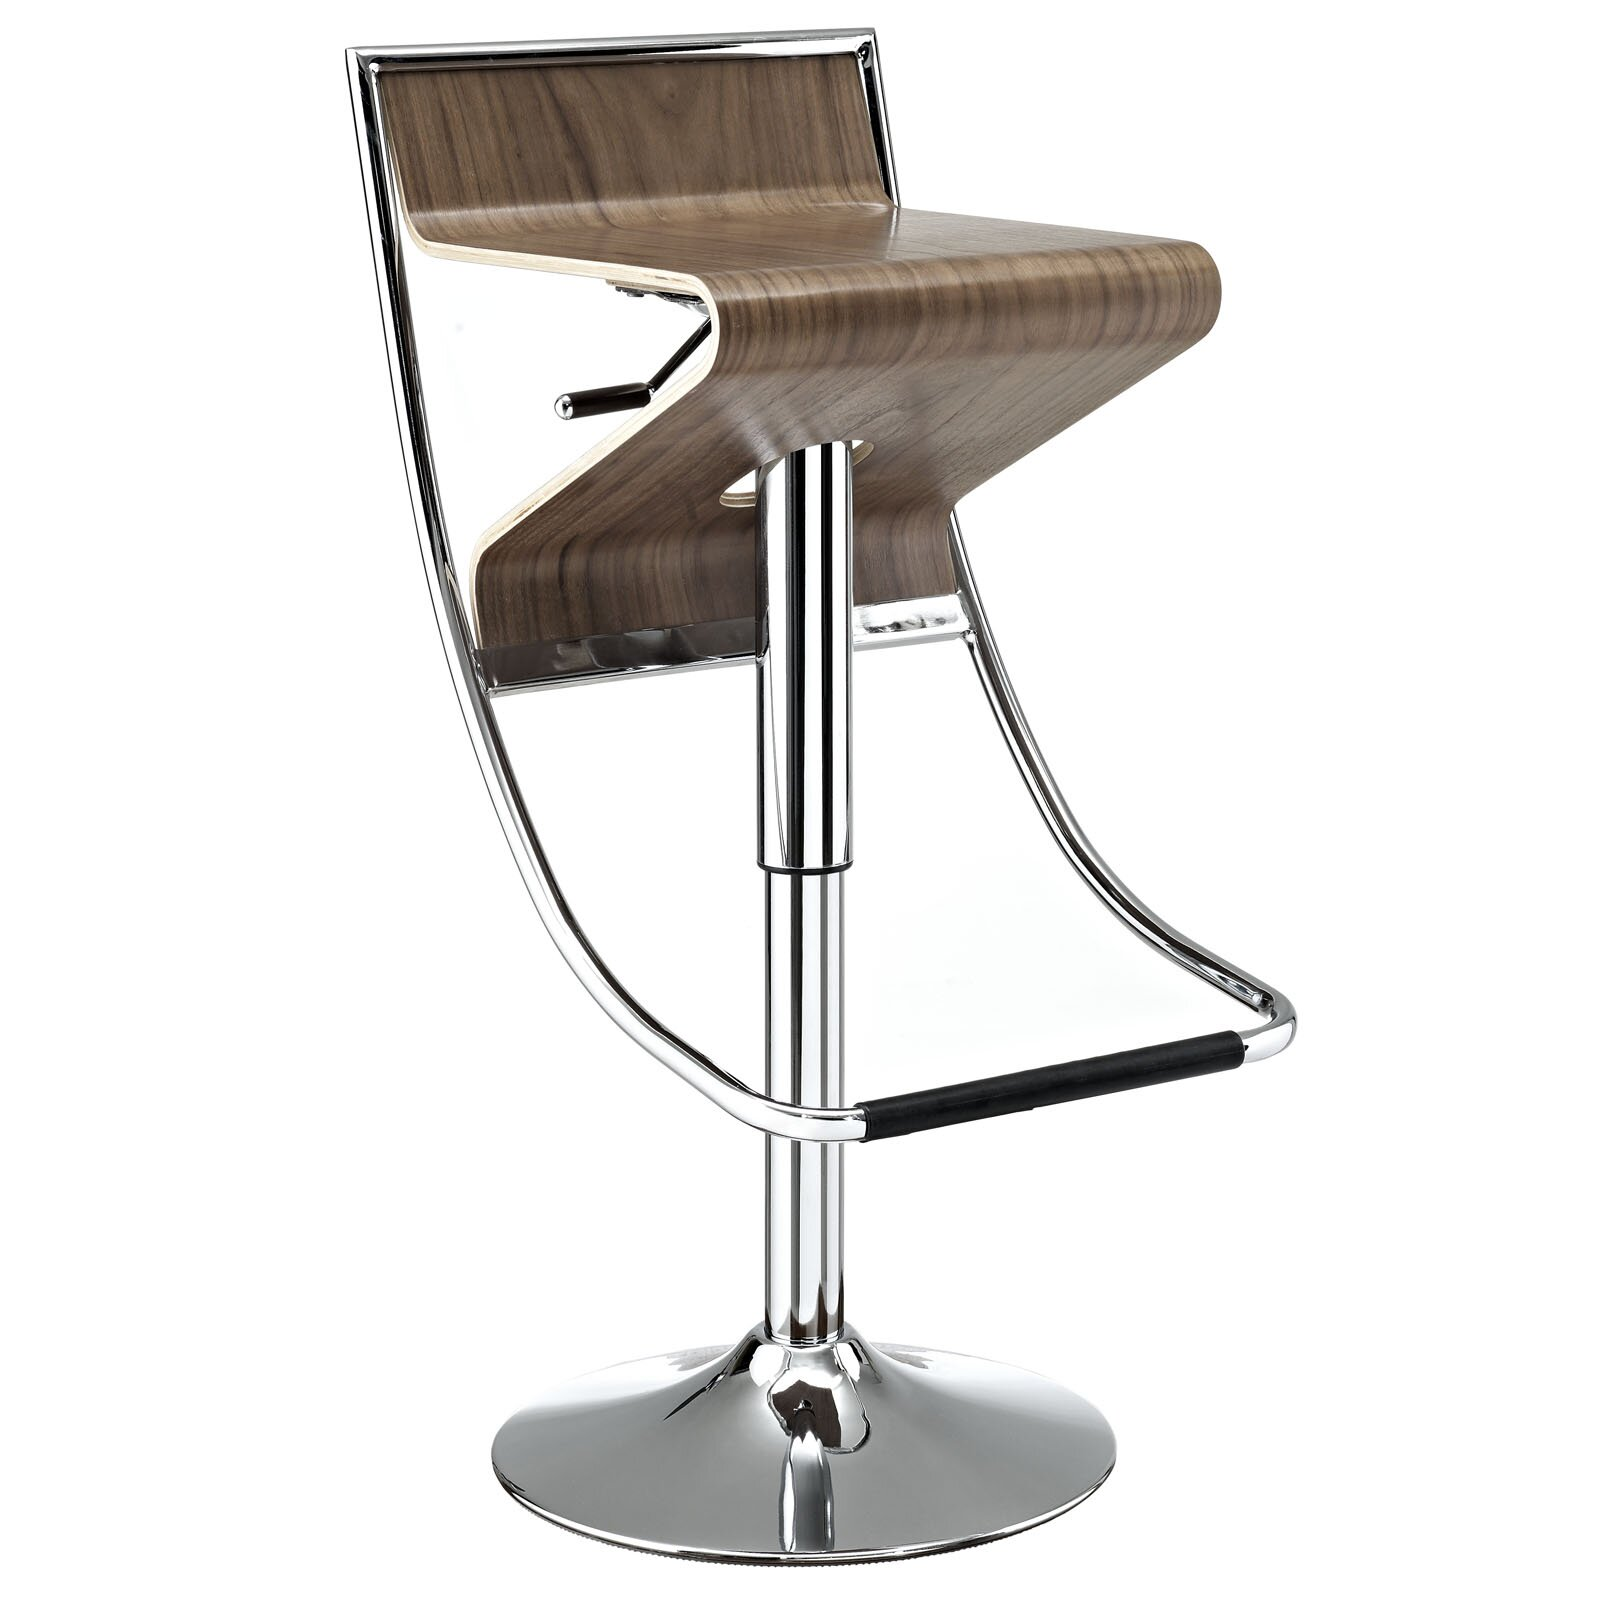 Modway Zig Zag Adjustable Height Swivel Bar Stool